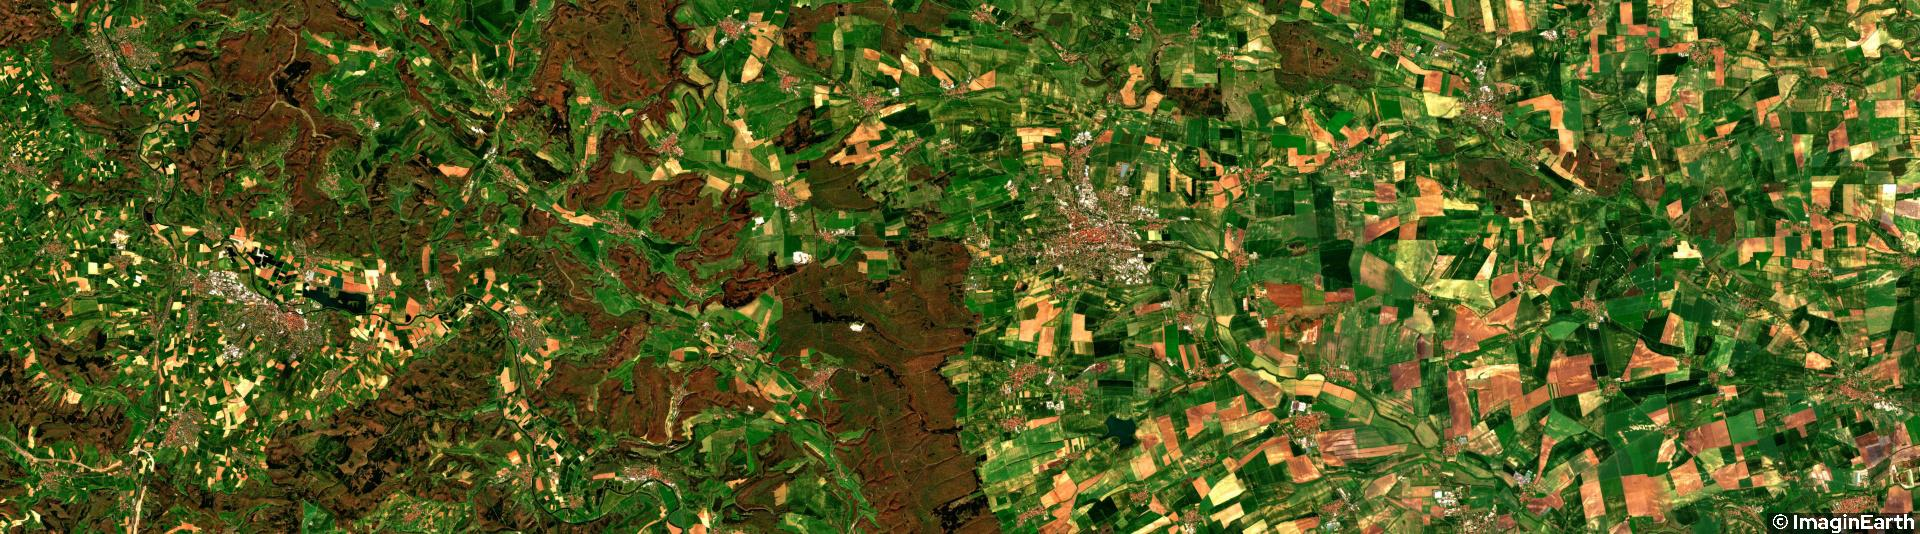 voyager en europe, allemagne, photo satellite